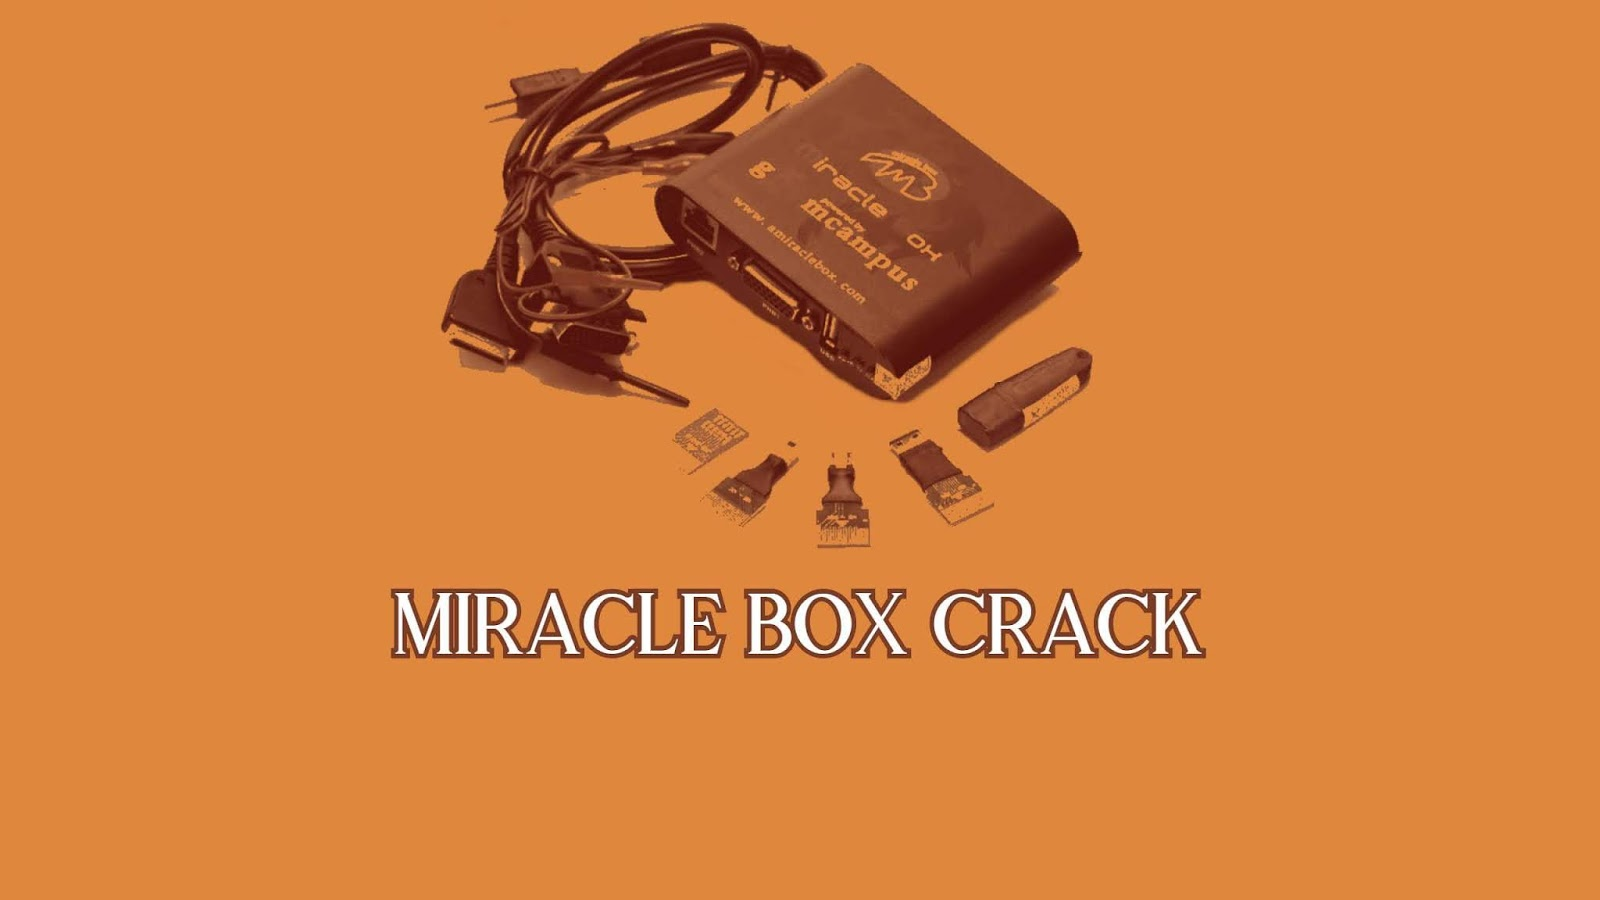 miracle box crack,miracle box,miracle thunder crack,miracle box crack 2019,miracle crack,miracle box crack 2.82,miracle box 2.82 crack,miracle box 2.27a crack,miracle box crack without box,miracle box crack 2.93 download,miracle thunder 2.89 crack,miracle box crack 2019 free download,miracle box crack 2.82 free download,miracle box crack latest 2019 without box download,miracle 2.82 crack